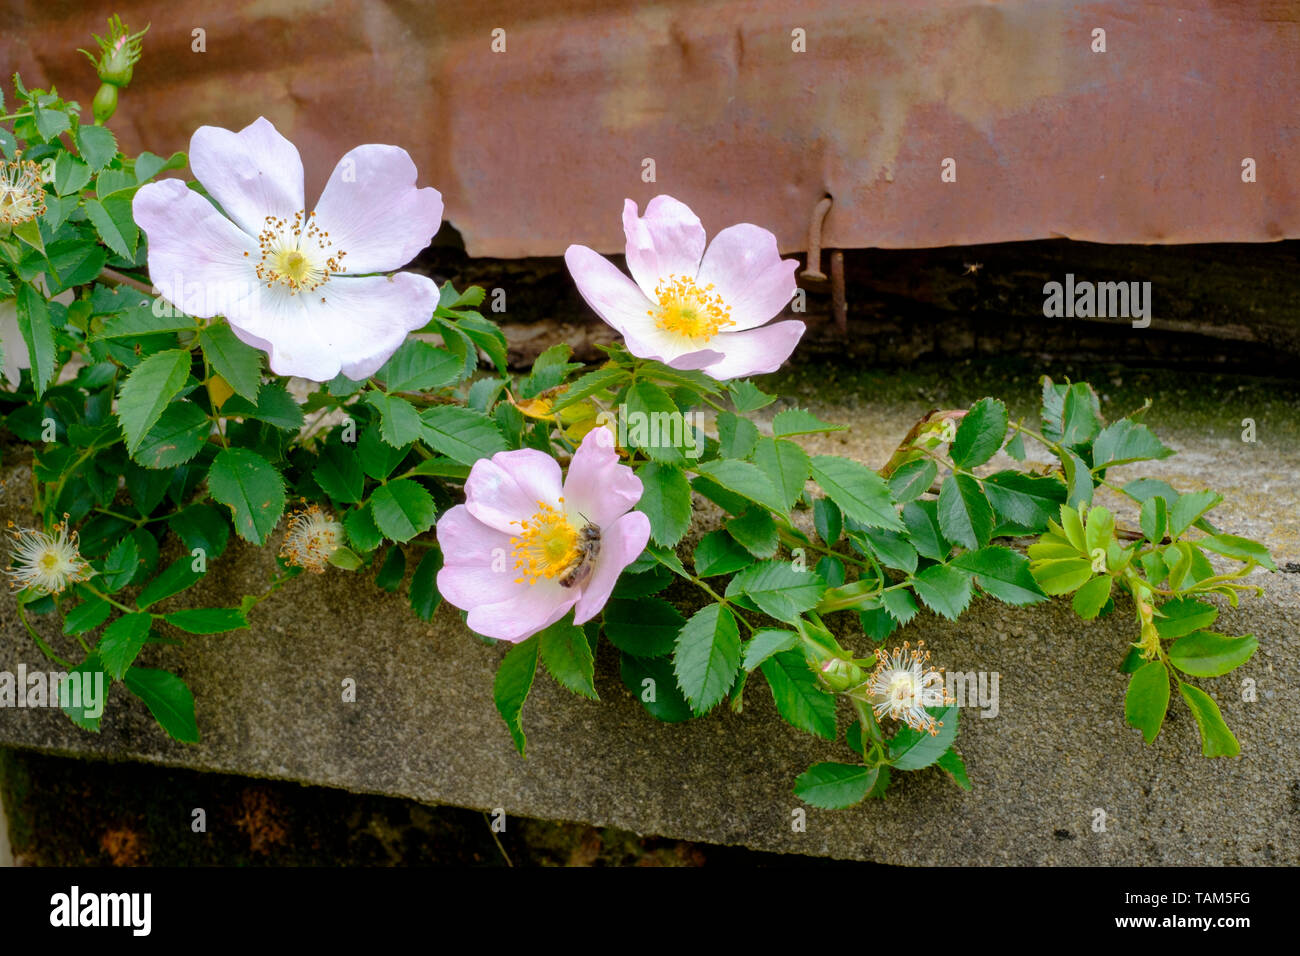 dog rose rosa canina flowers bloom on the shrub in a rural garden zala county hungary Stock Photo